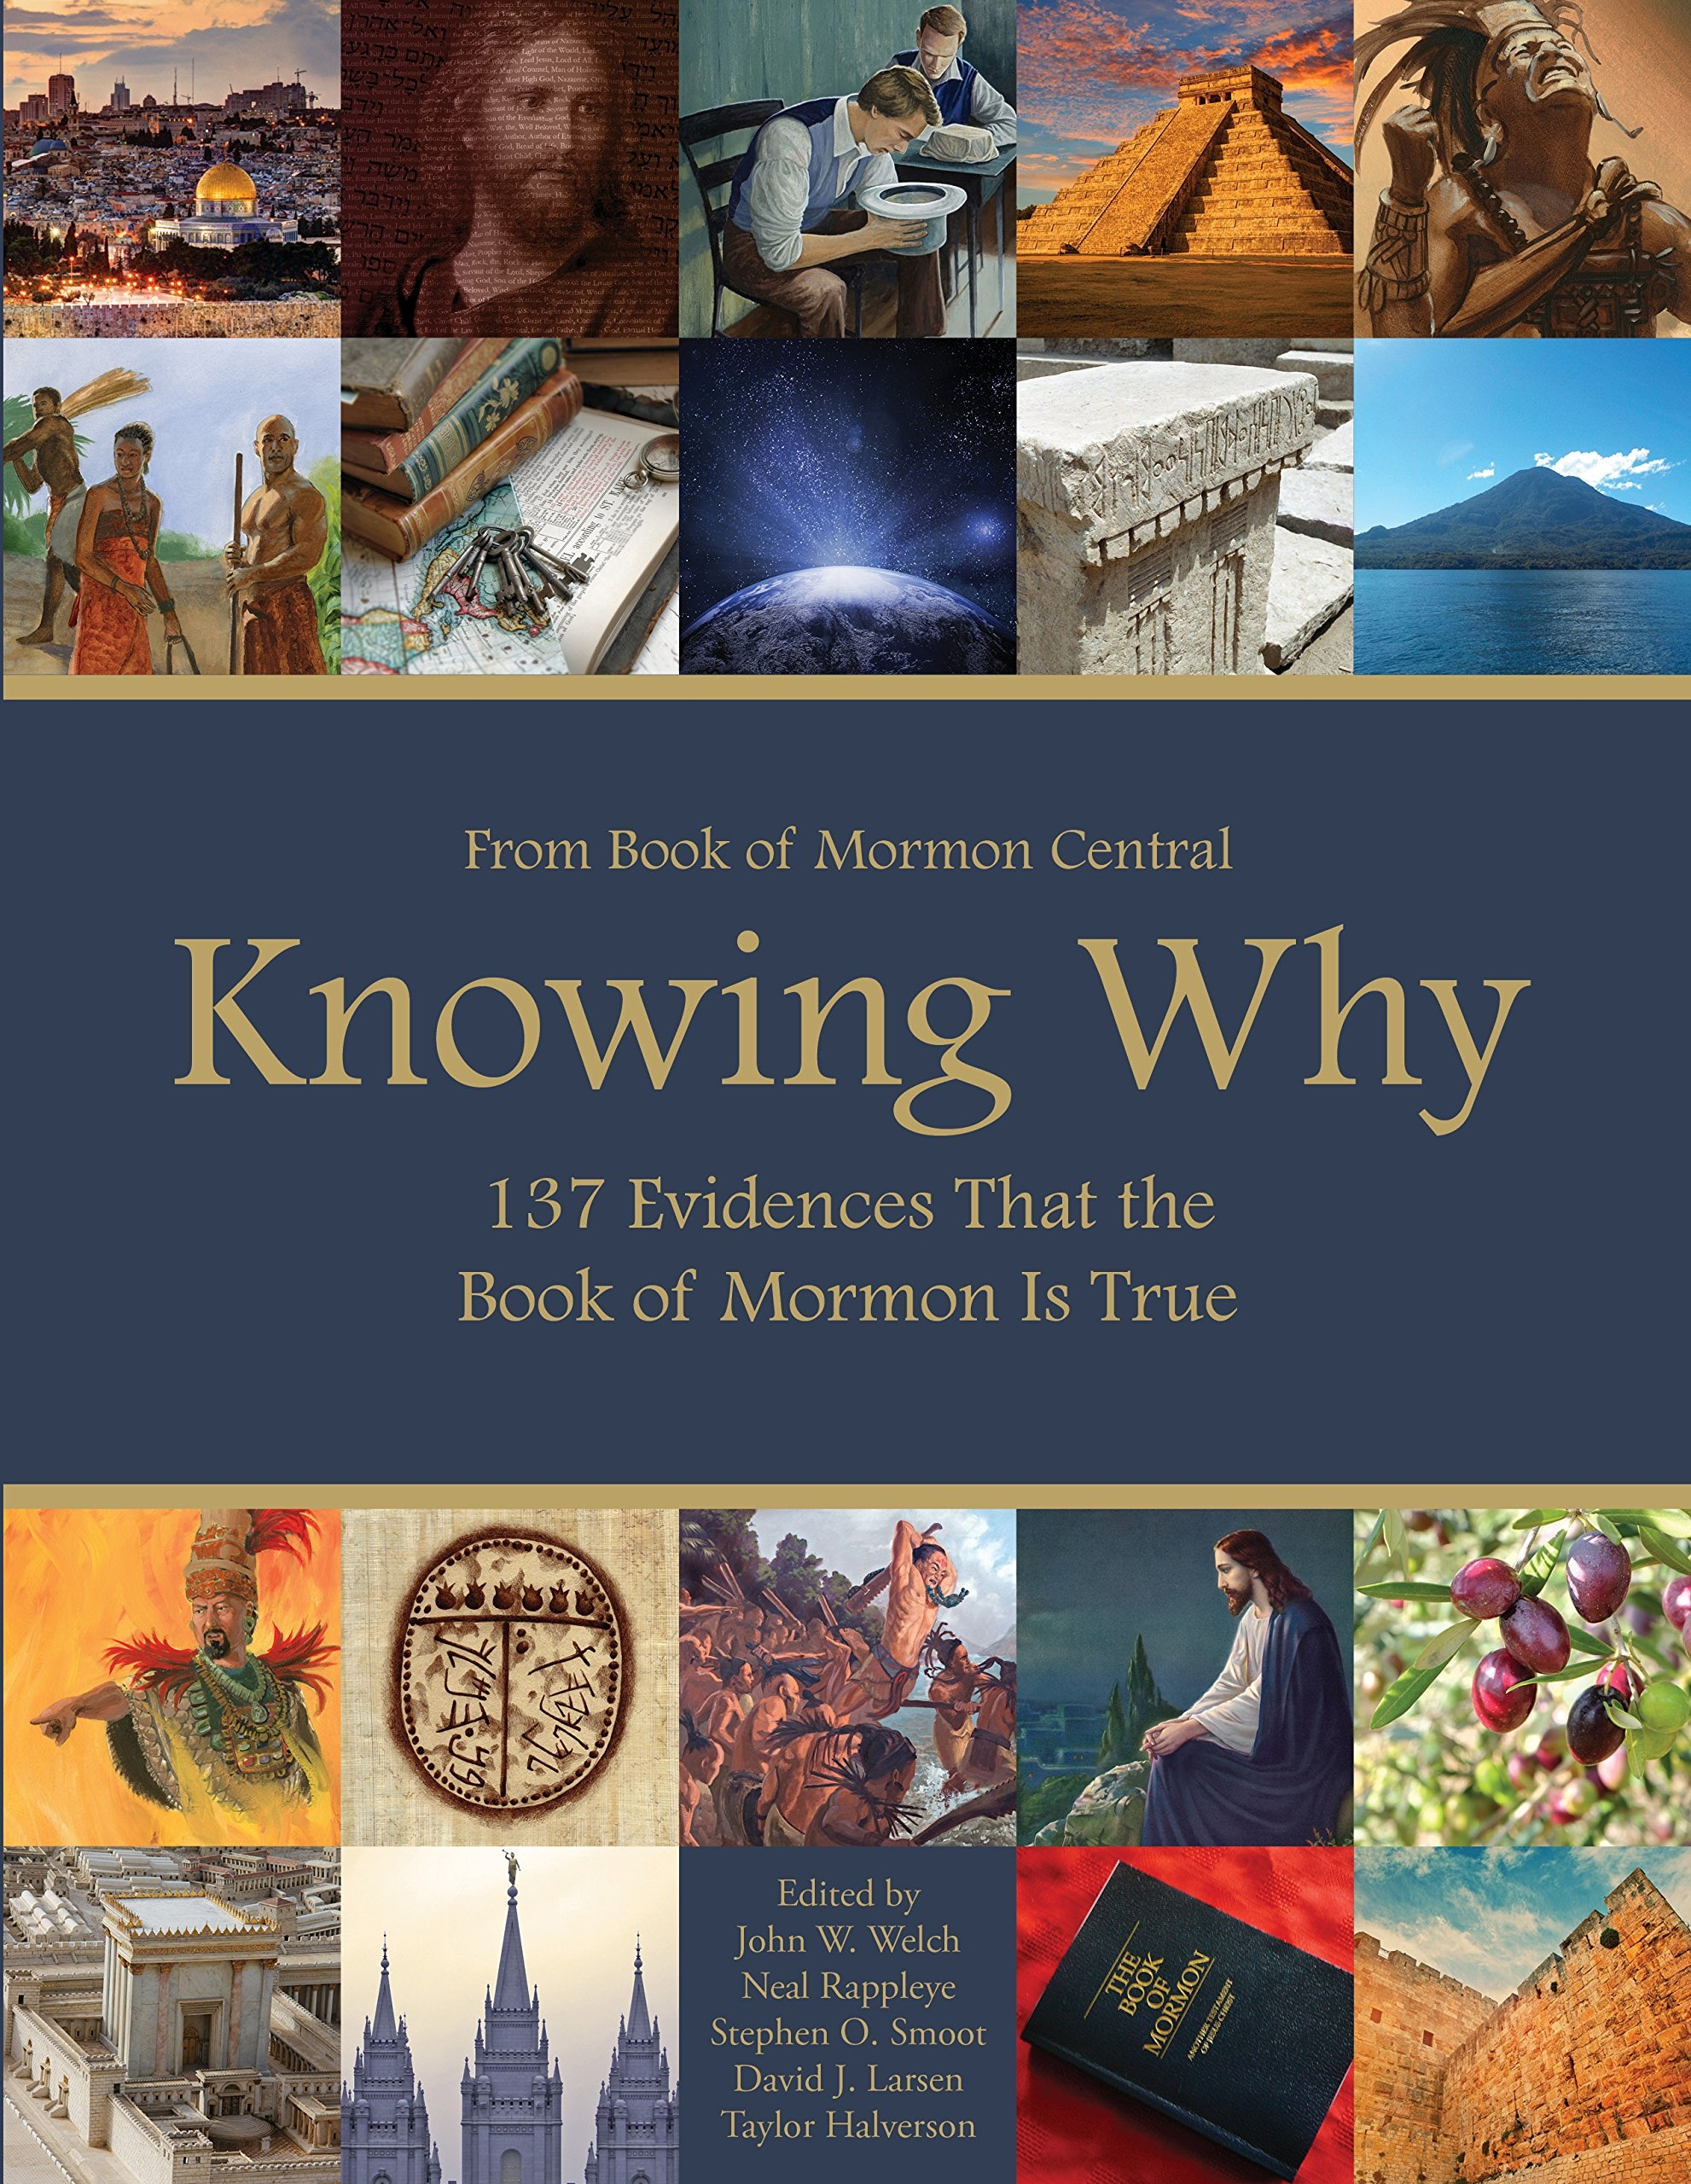 Knowing Why;  137 Evidences that the Book fo Mormon is true, Book of Mormon Central